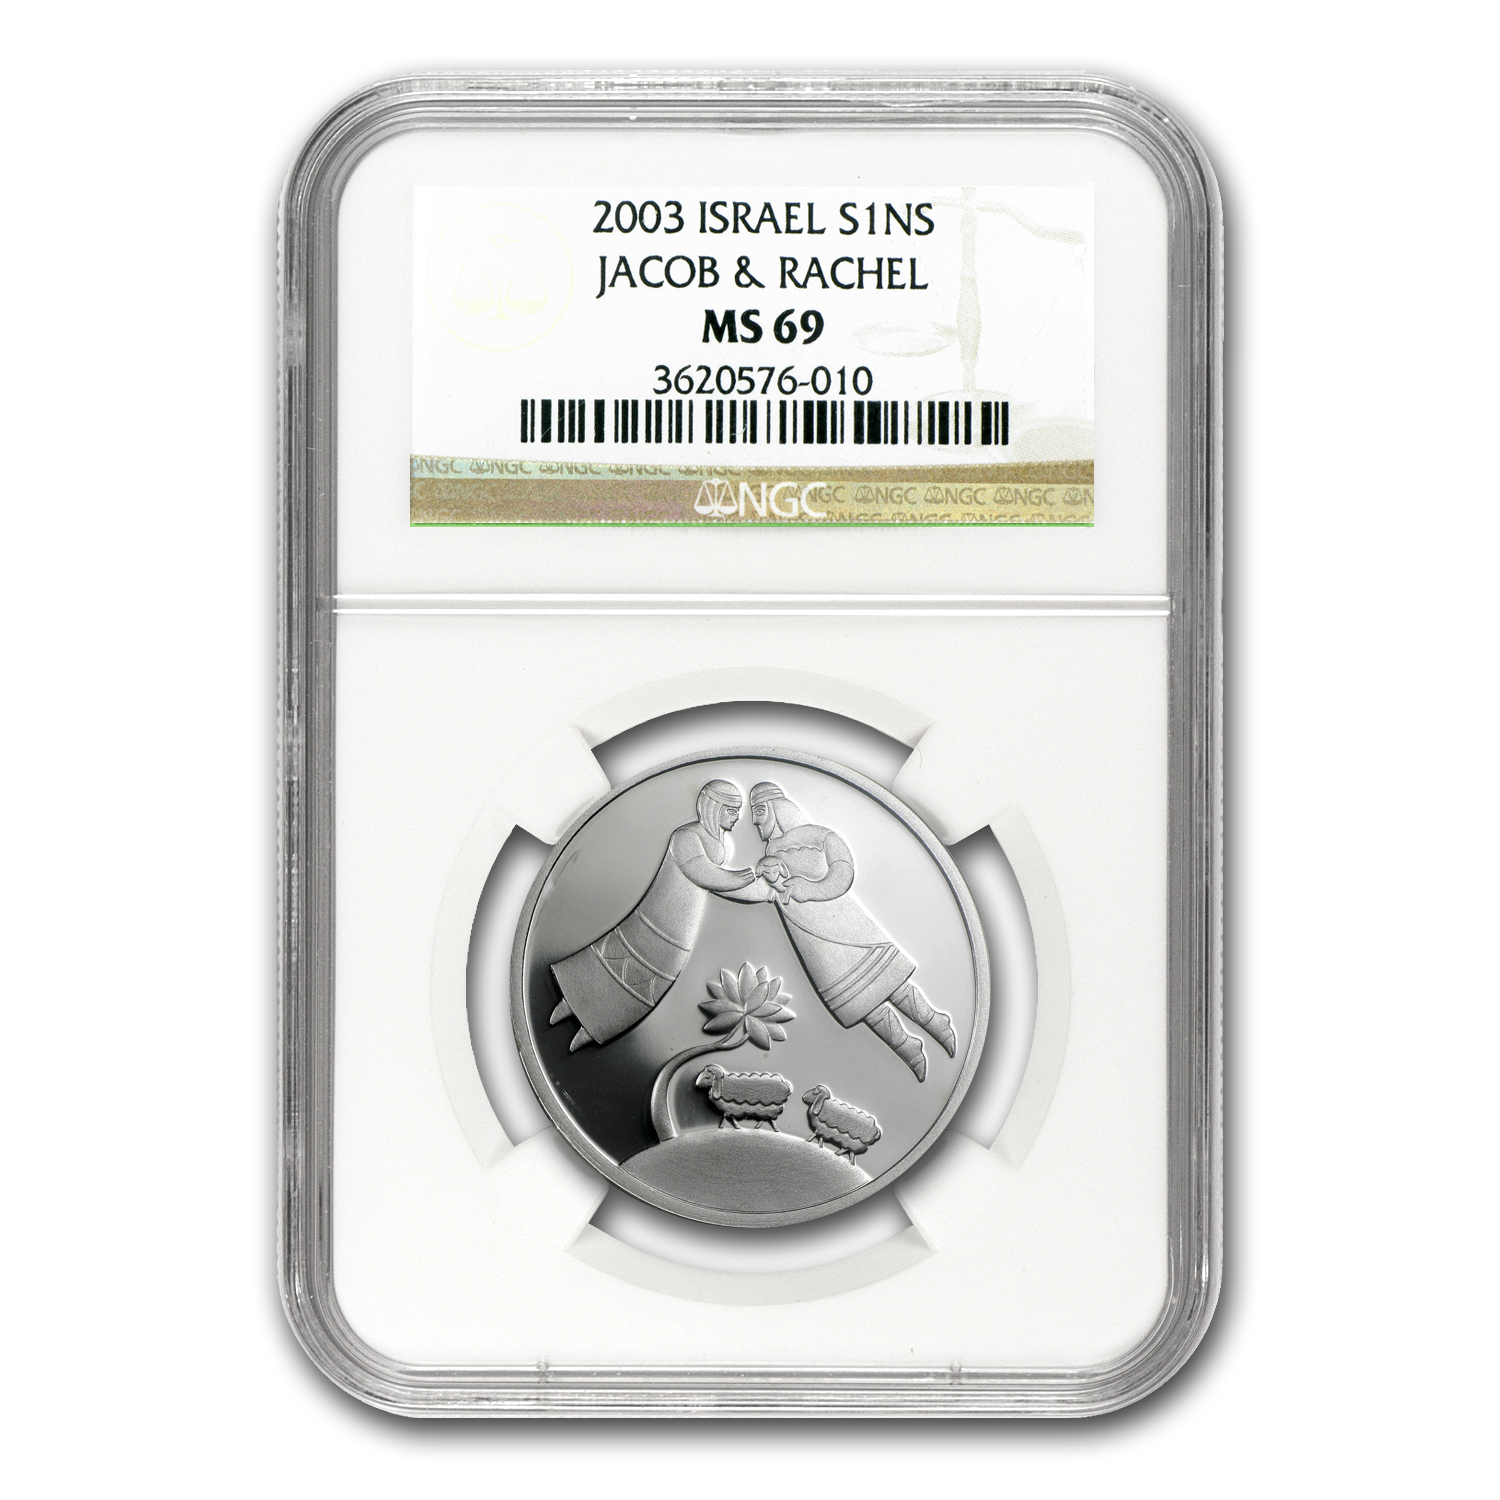 2003 Israel Jacob and Rachel Silver 1 NIS MS-69 NGC